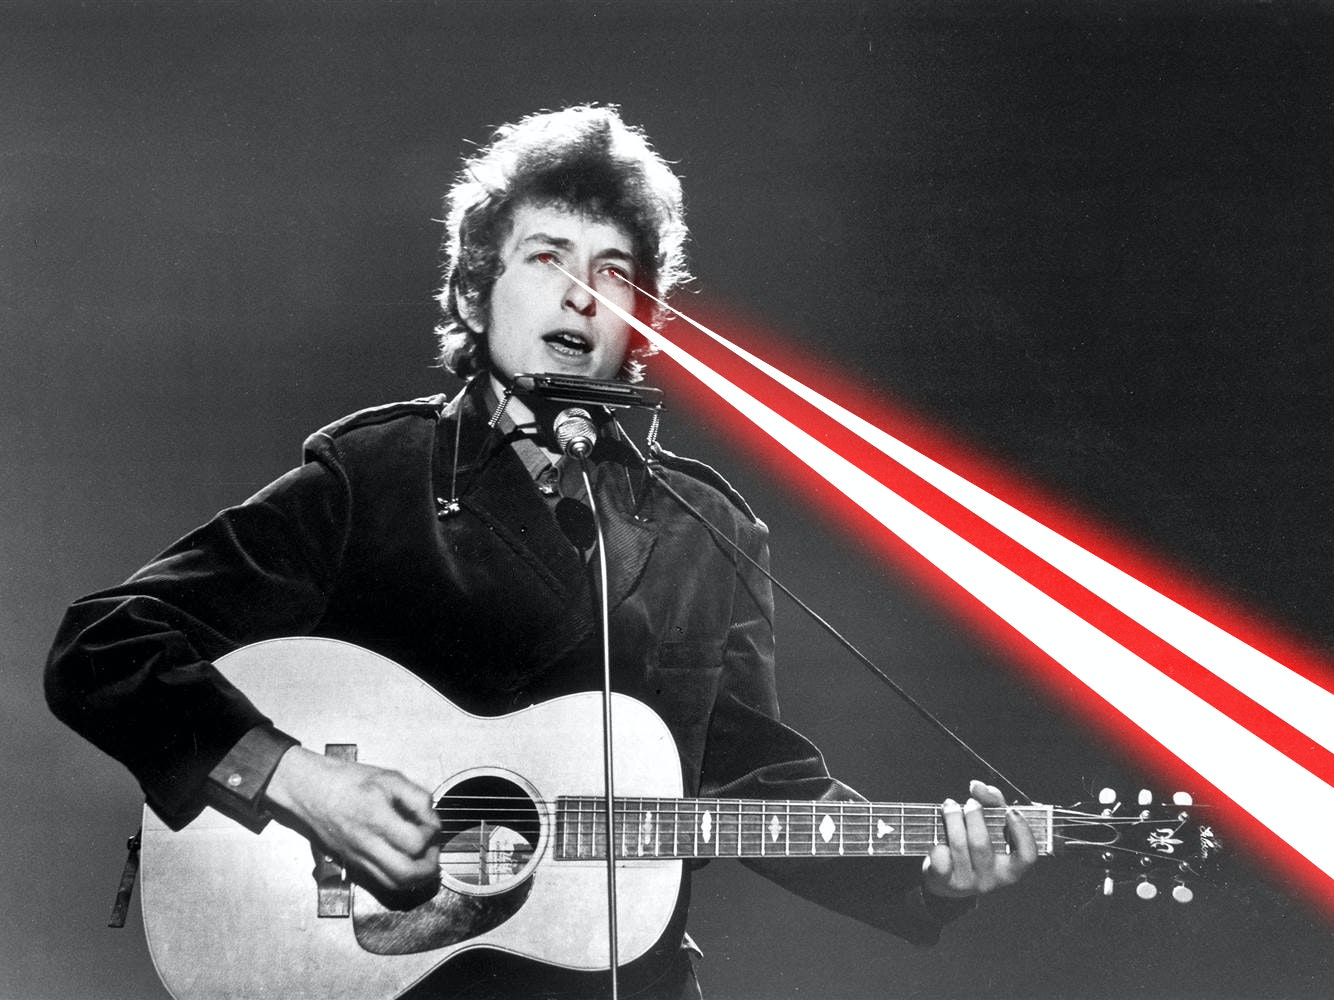 Cylons Might Have Helped Bob Dylan Win the Nobel Prize